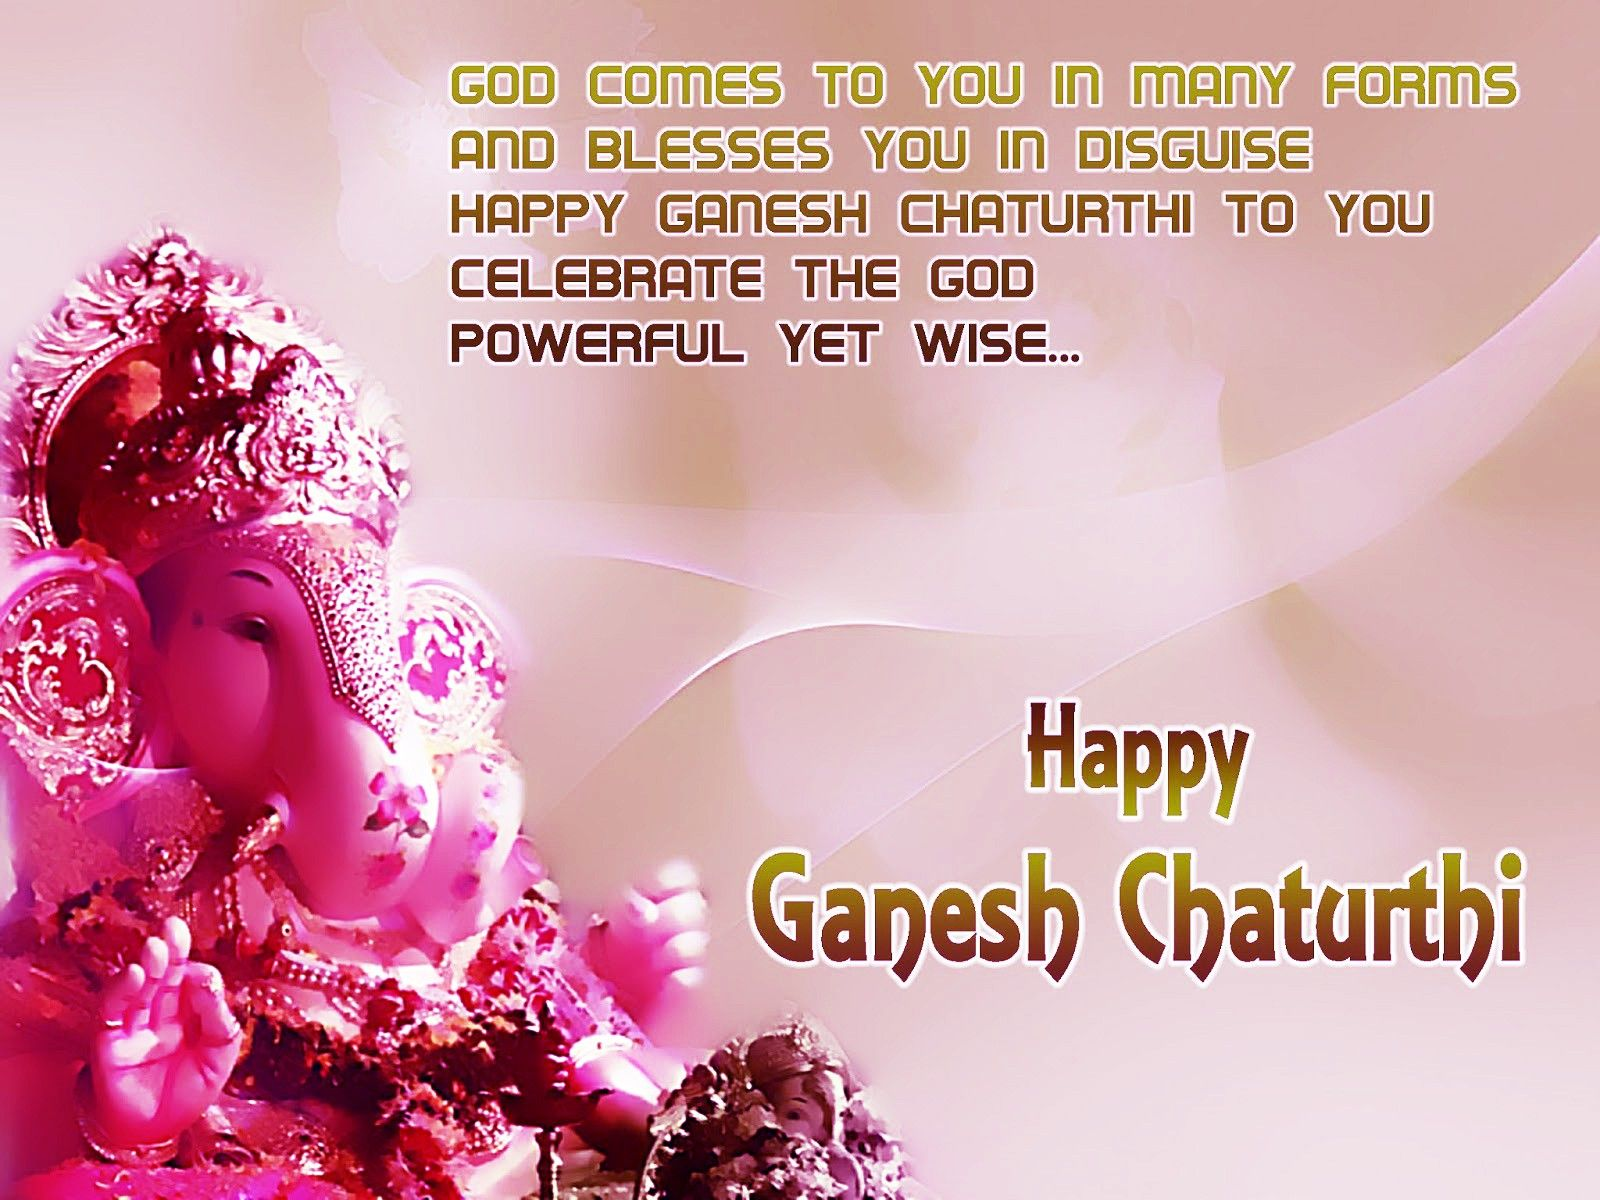 Wishing You Lot Of Happines And Lord Ganesha S Blessing On The Auspiciou Occasion Gane Good Morning Picture Quote Images Essay